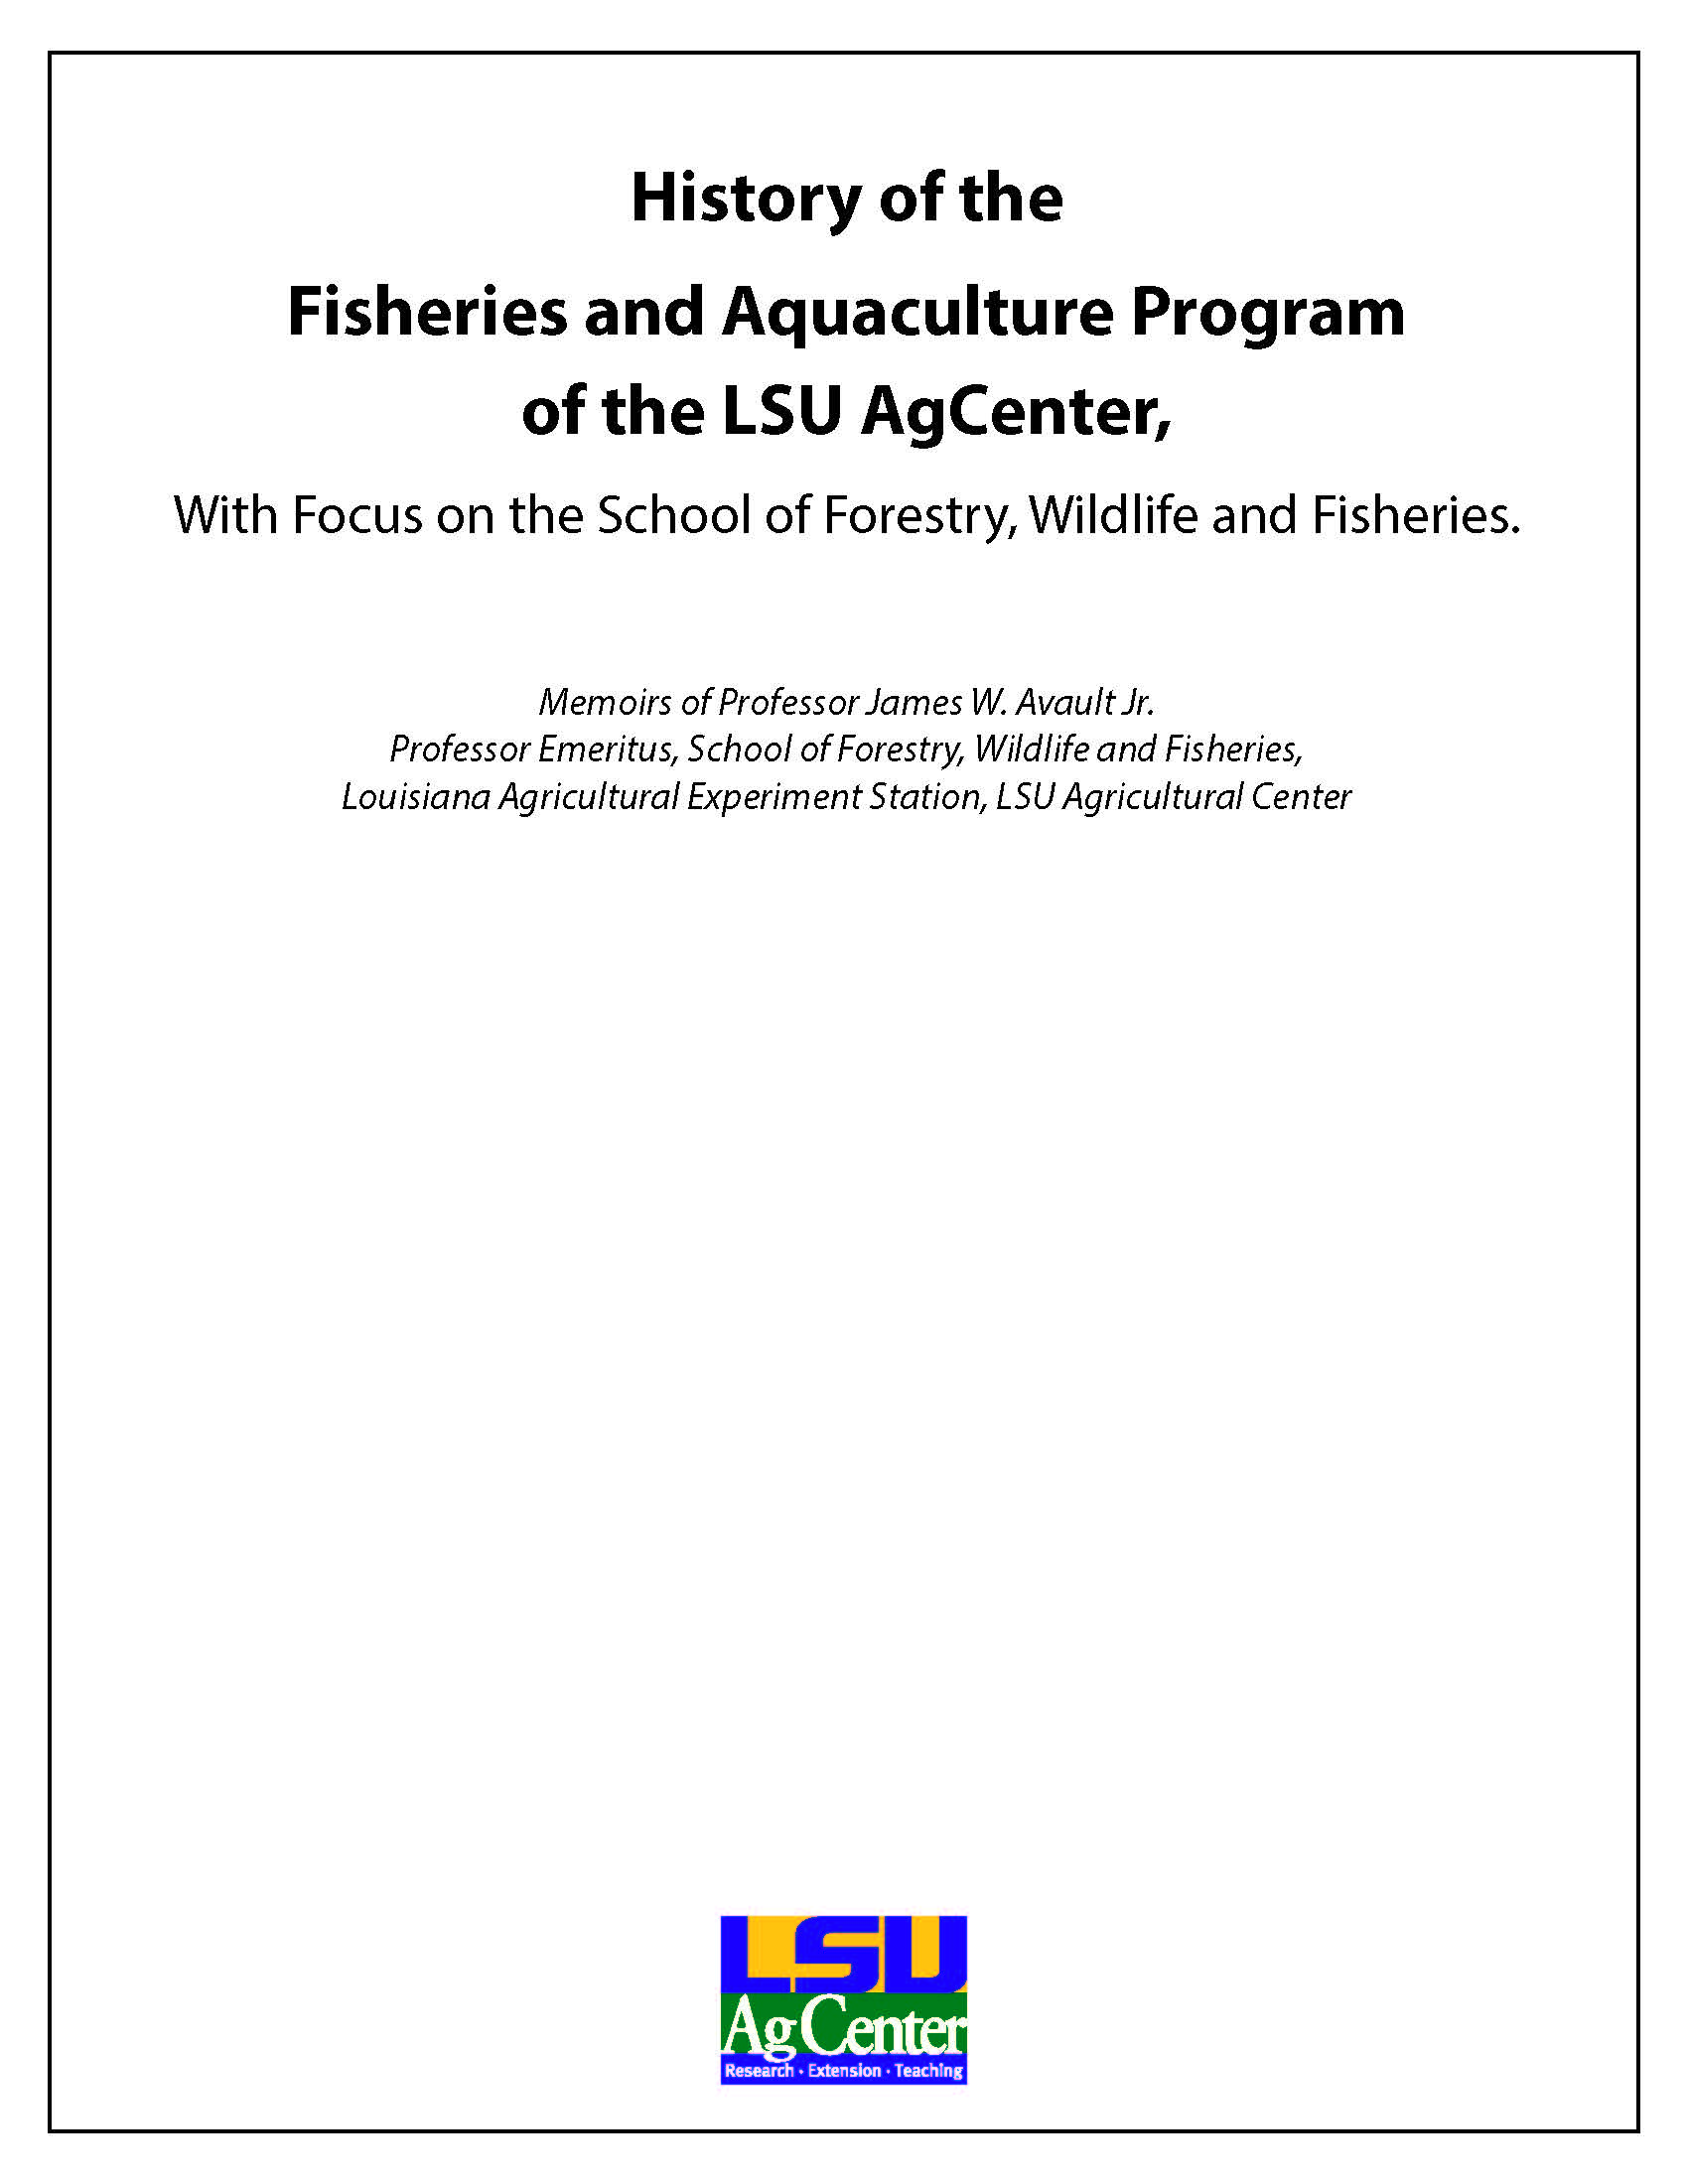 MISC-164 History of the Fisheries and Aquaculture Program